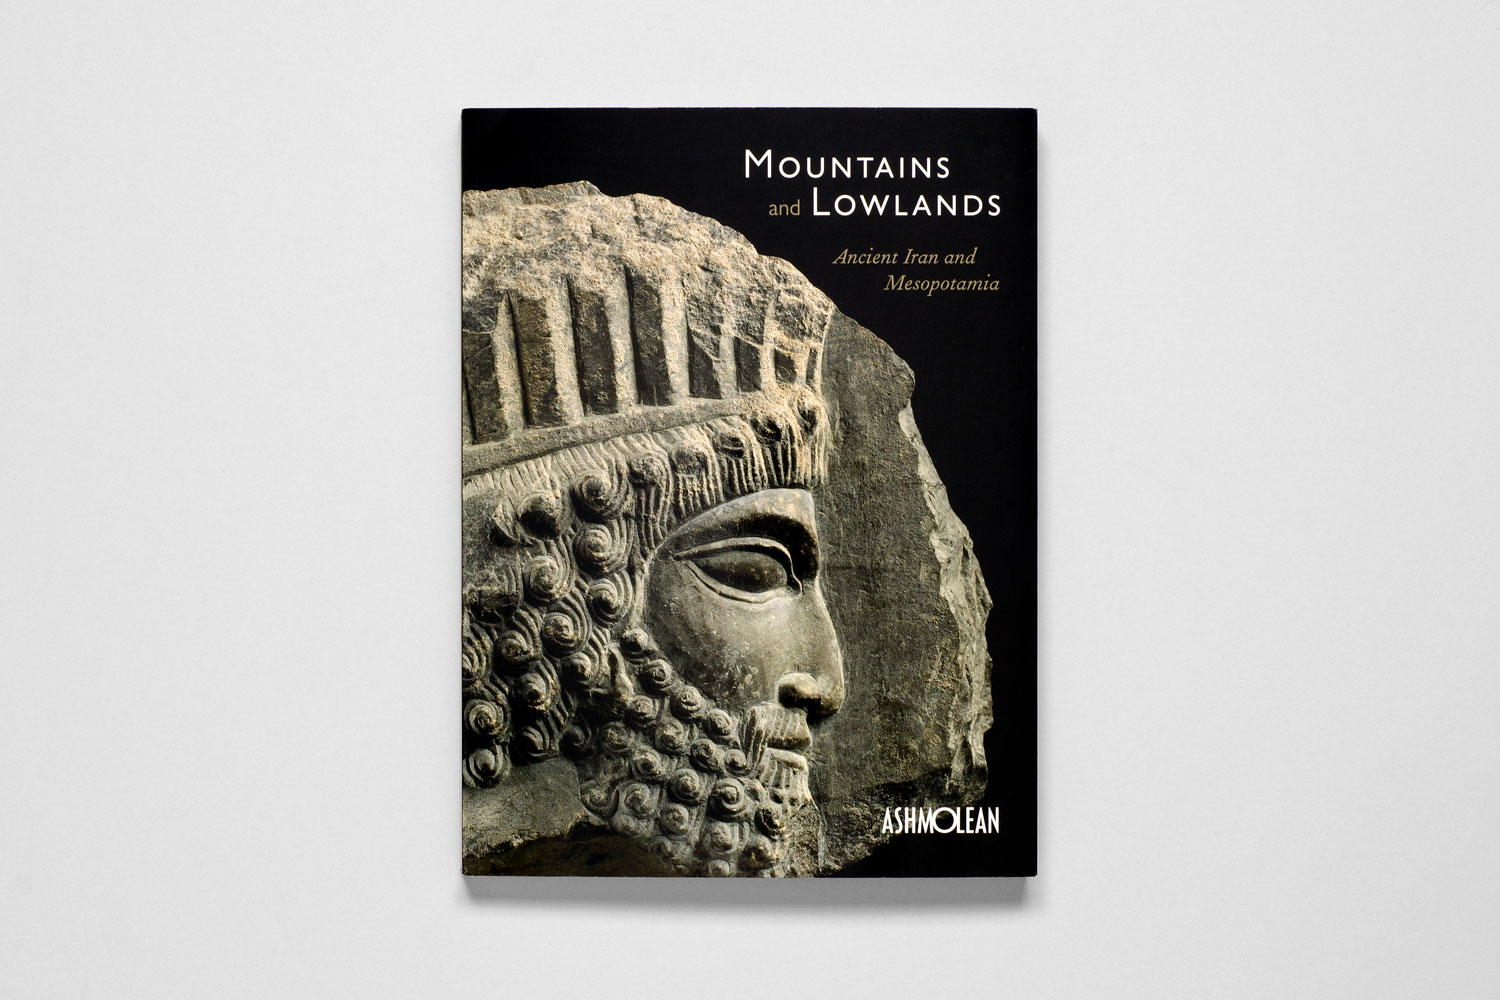 Mountains & Lowlands: Ancient Iran and Mesopotamia